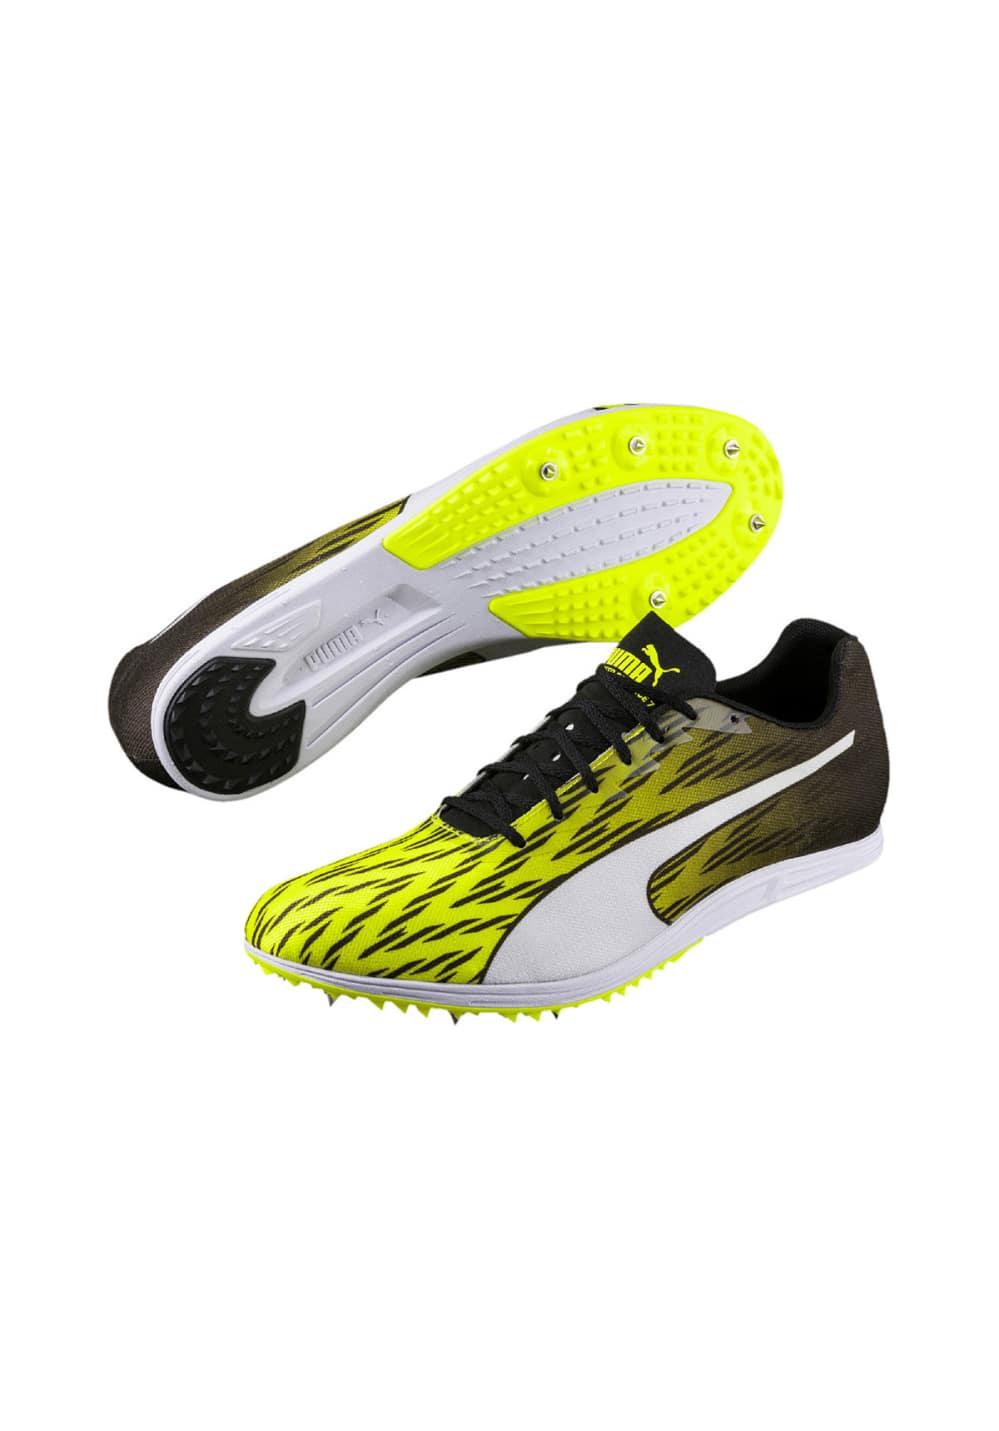 ... Puma Evospeed Distance 7 - Running shoes for Men - Yellow. Back to  Overview. -60% c6f93219a